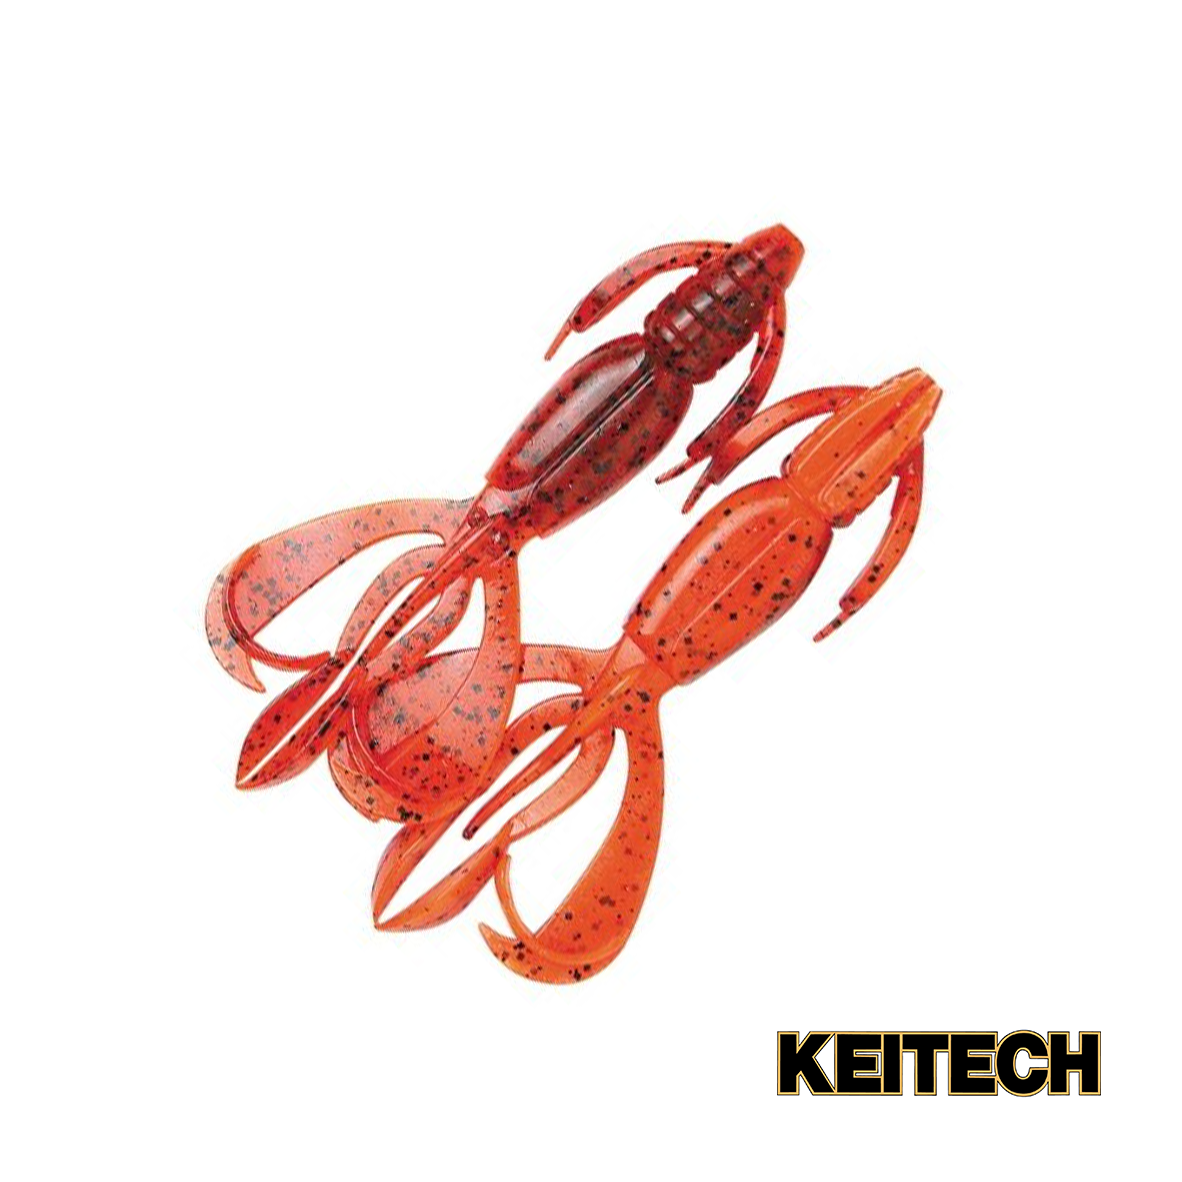 "Силикон Keitech Crazy Flapper 2.8"" (8 шт/упак) ц:407 delta craw"